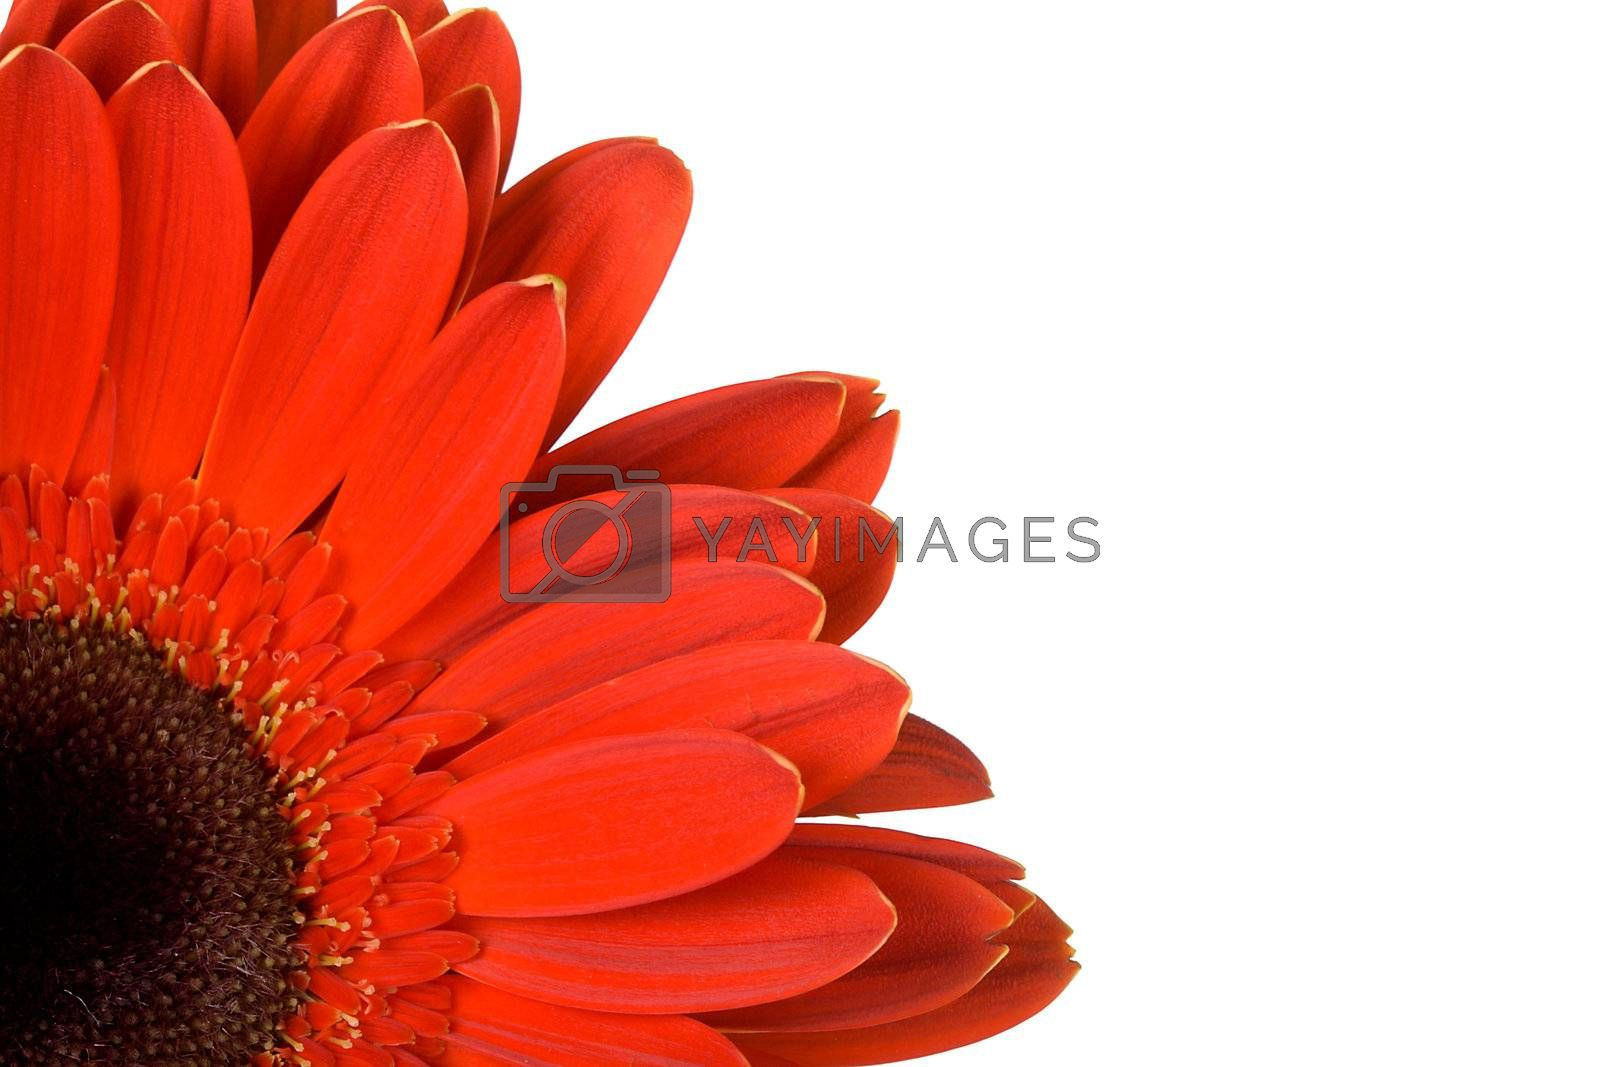 Royalty free image of part of red gerbera with blank place for your text by Alekcey